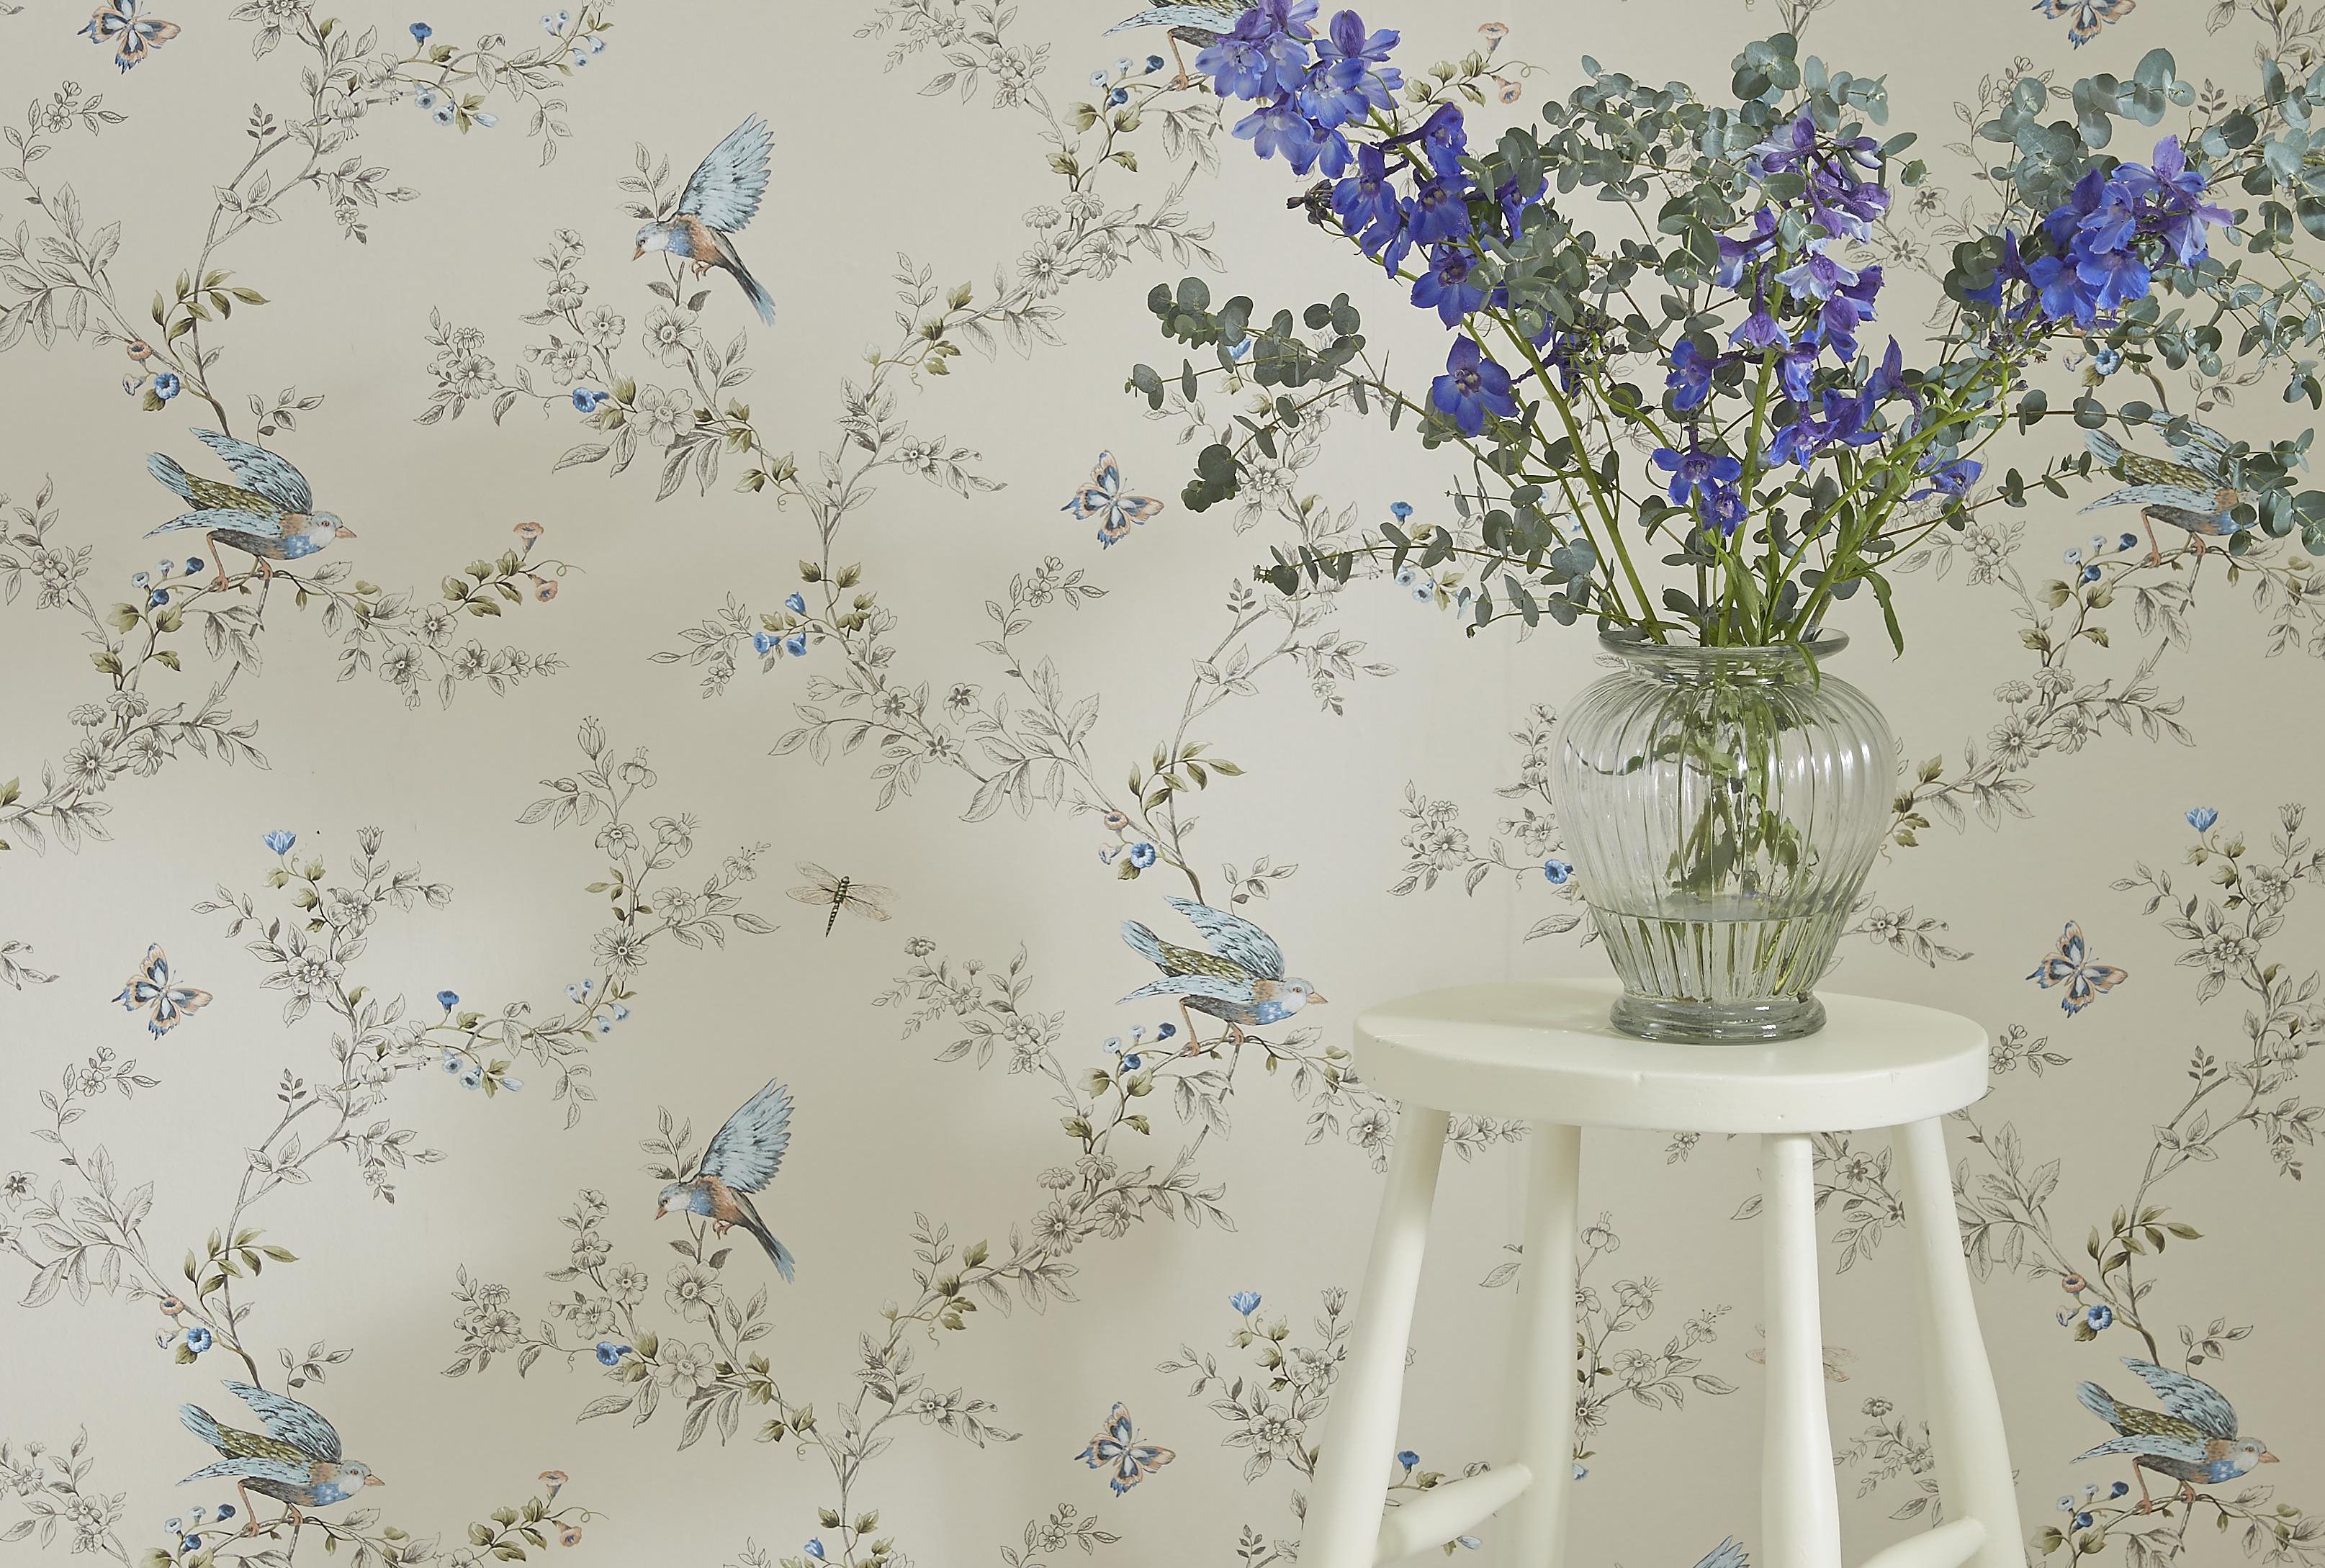 Buyer's guide to wallpaper